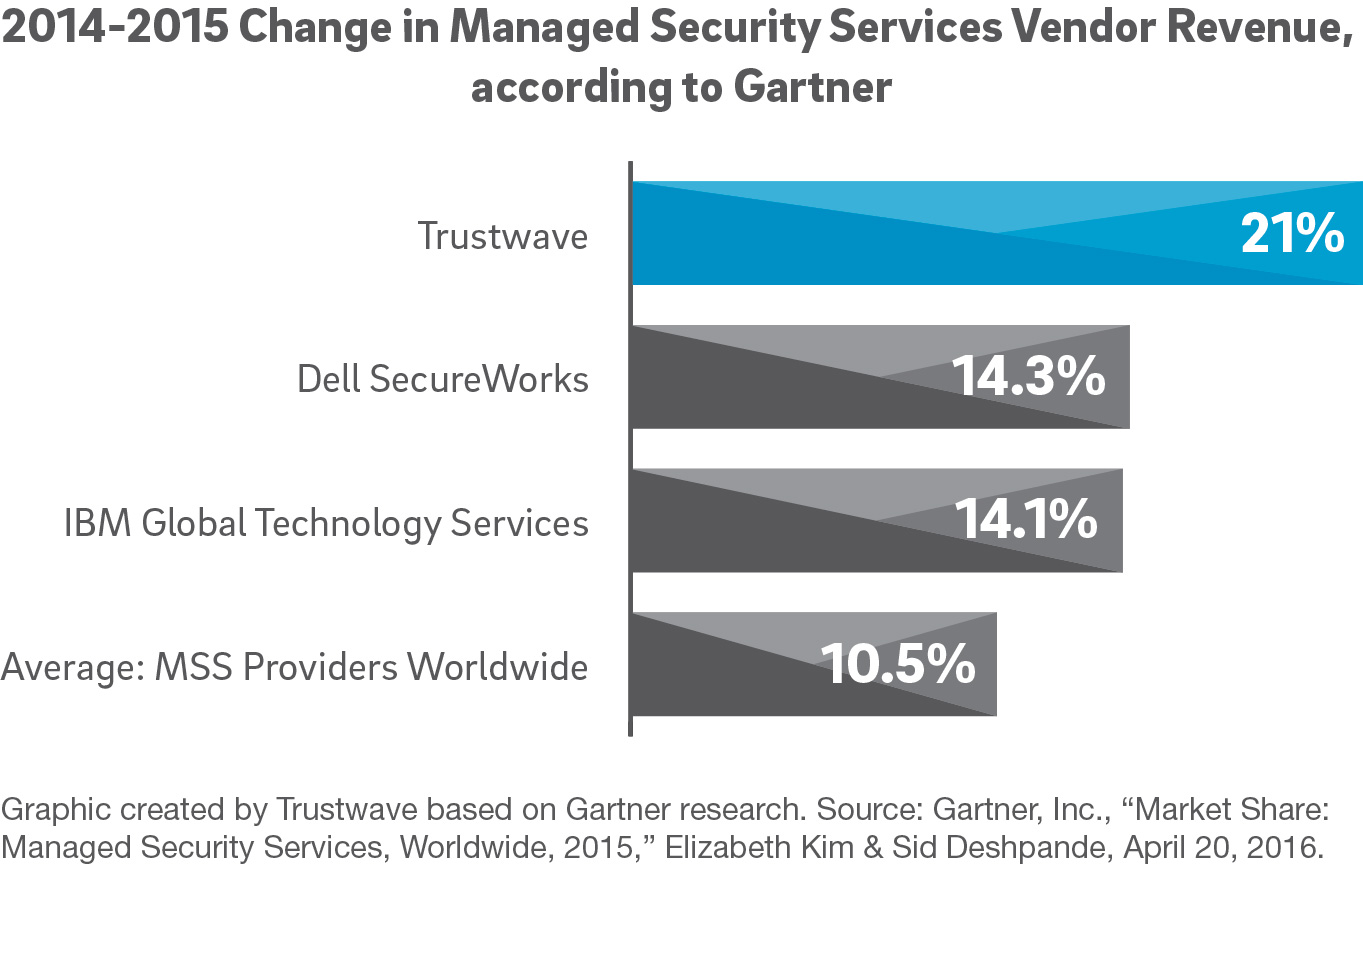 2014-2015 Change in Vendor Managed Security Services Revenue